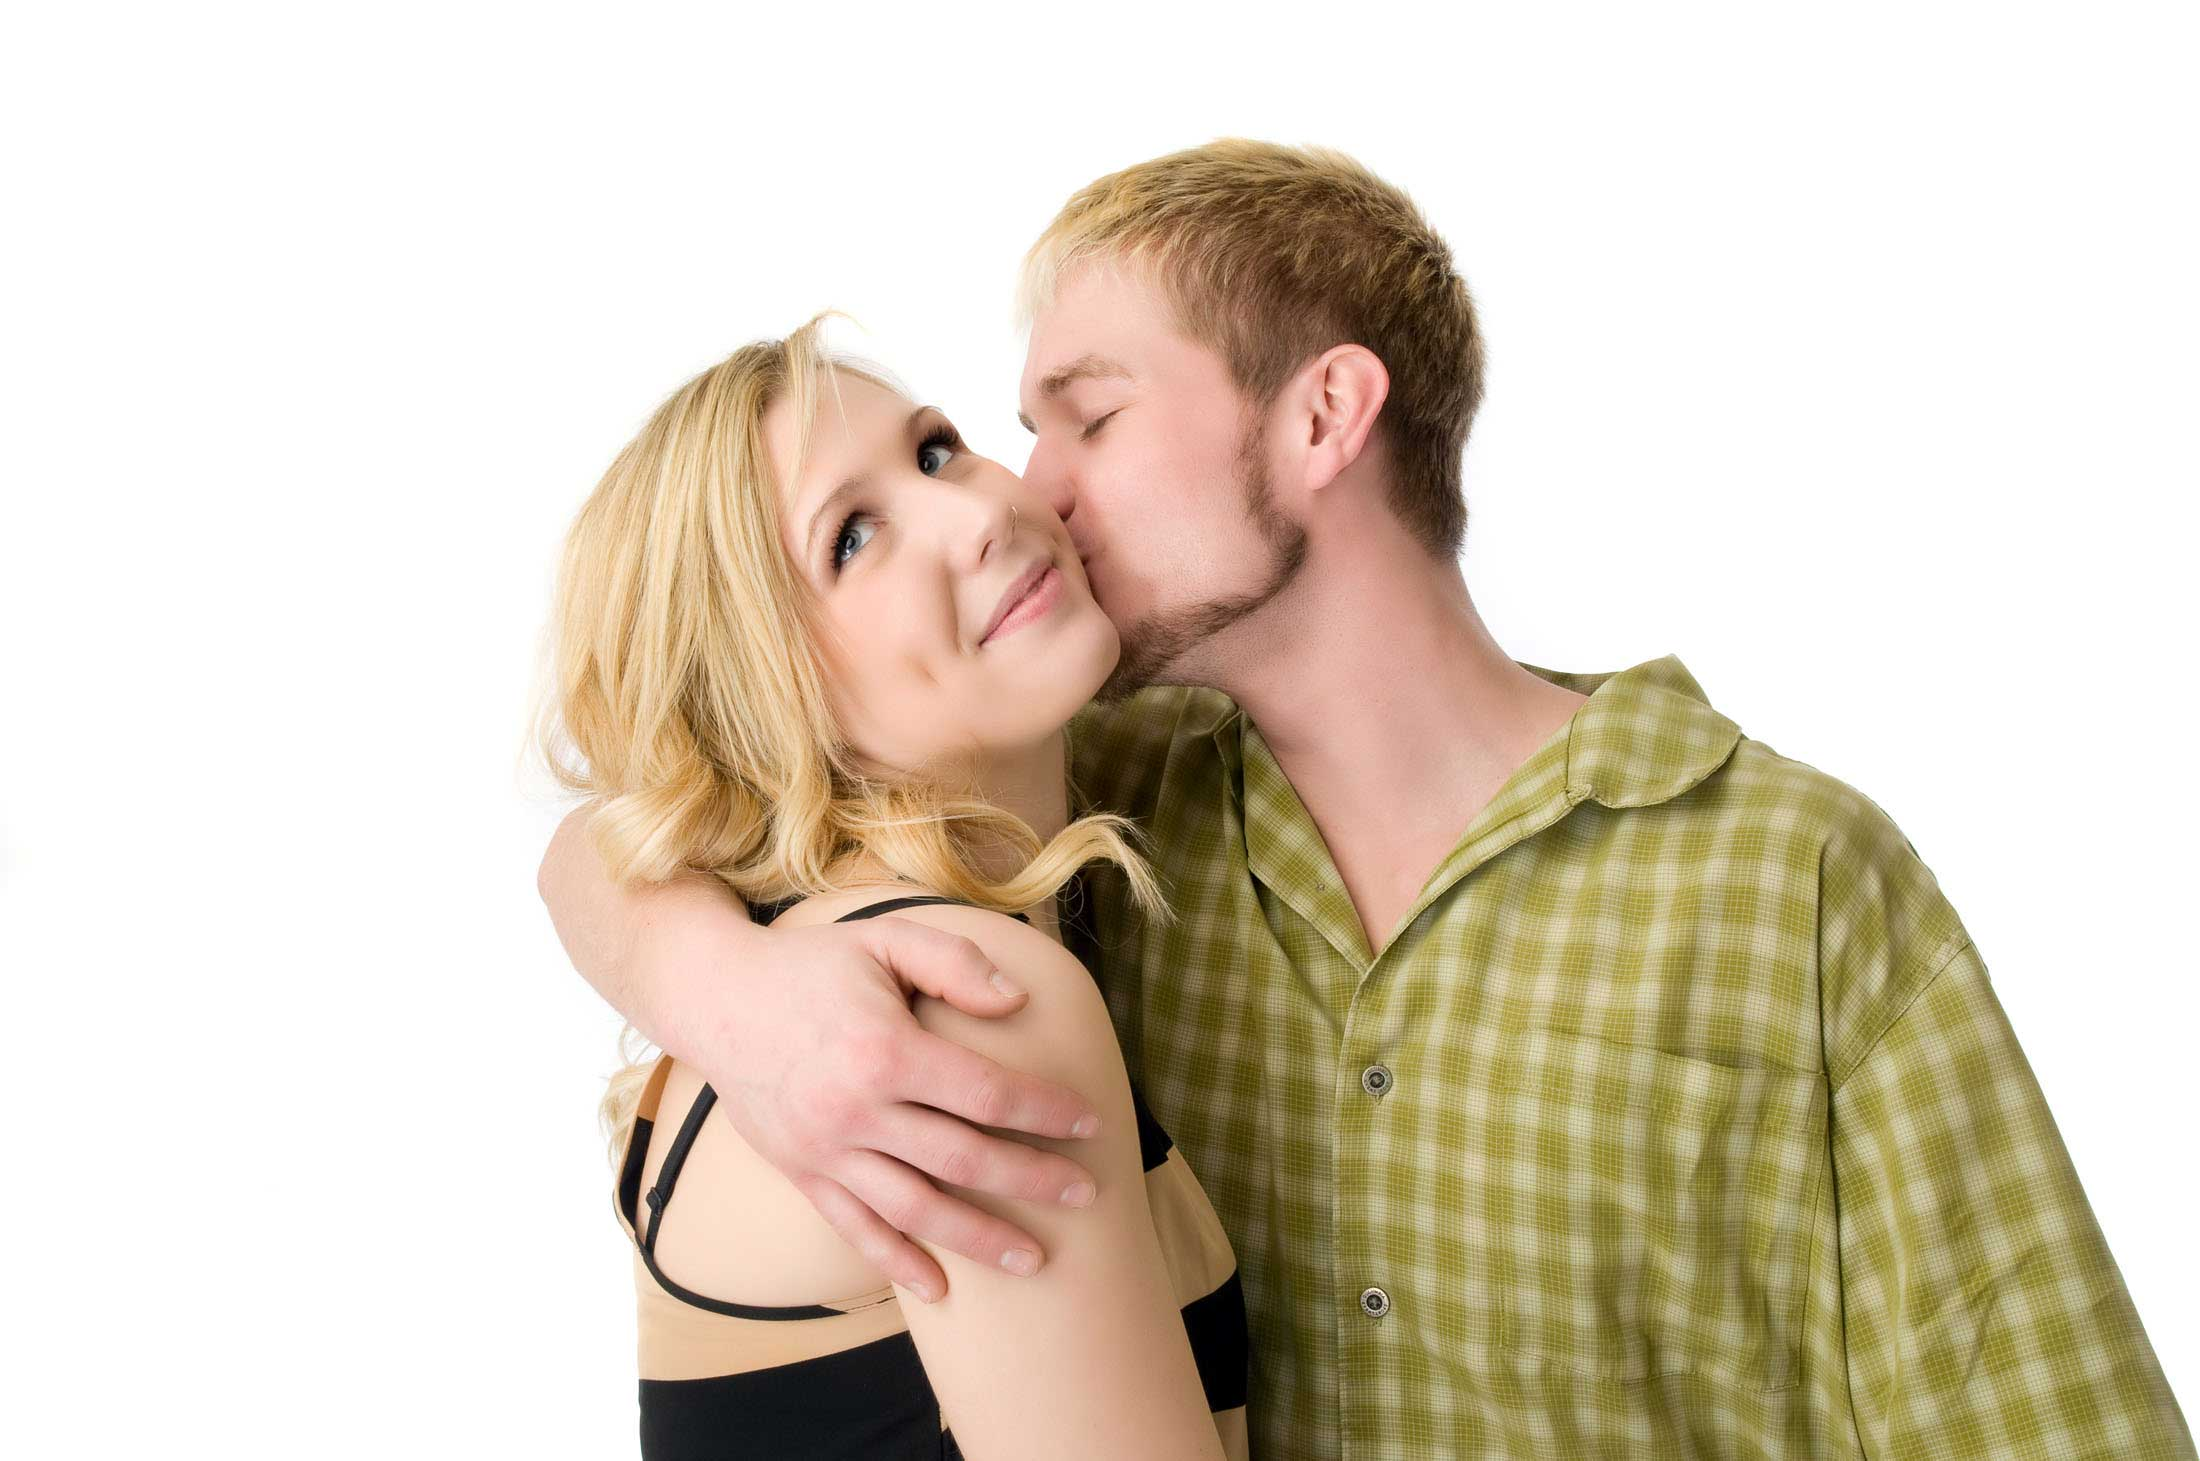 18+ kissing pictures of love couple | hd kissing wallpapers of couples